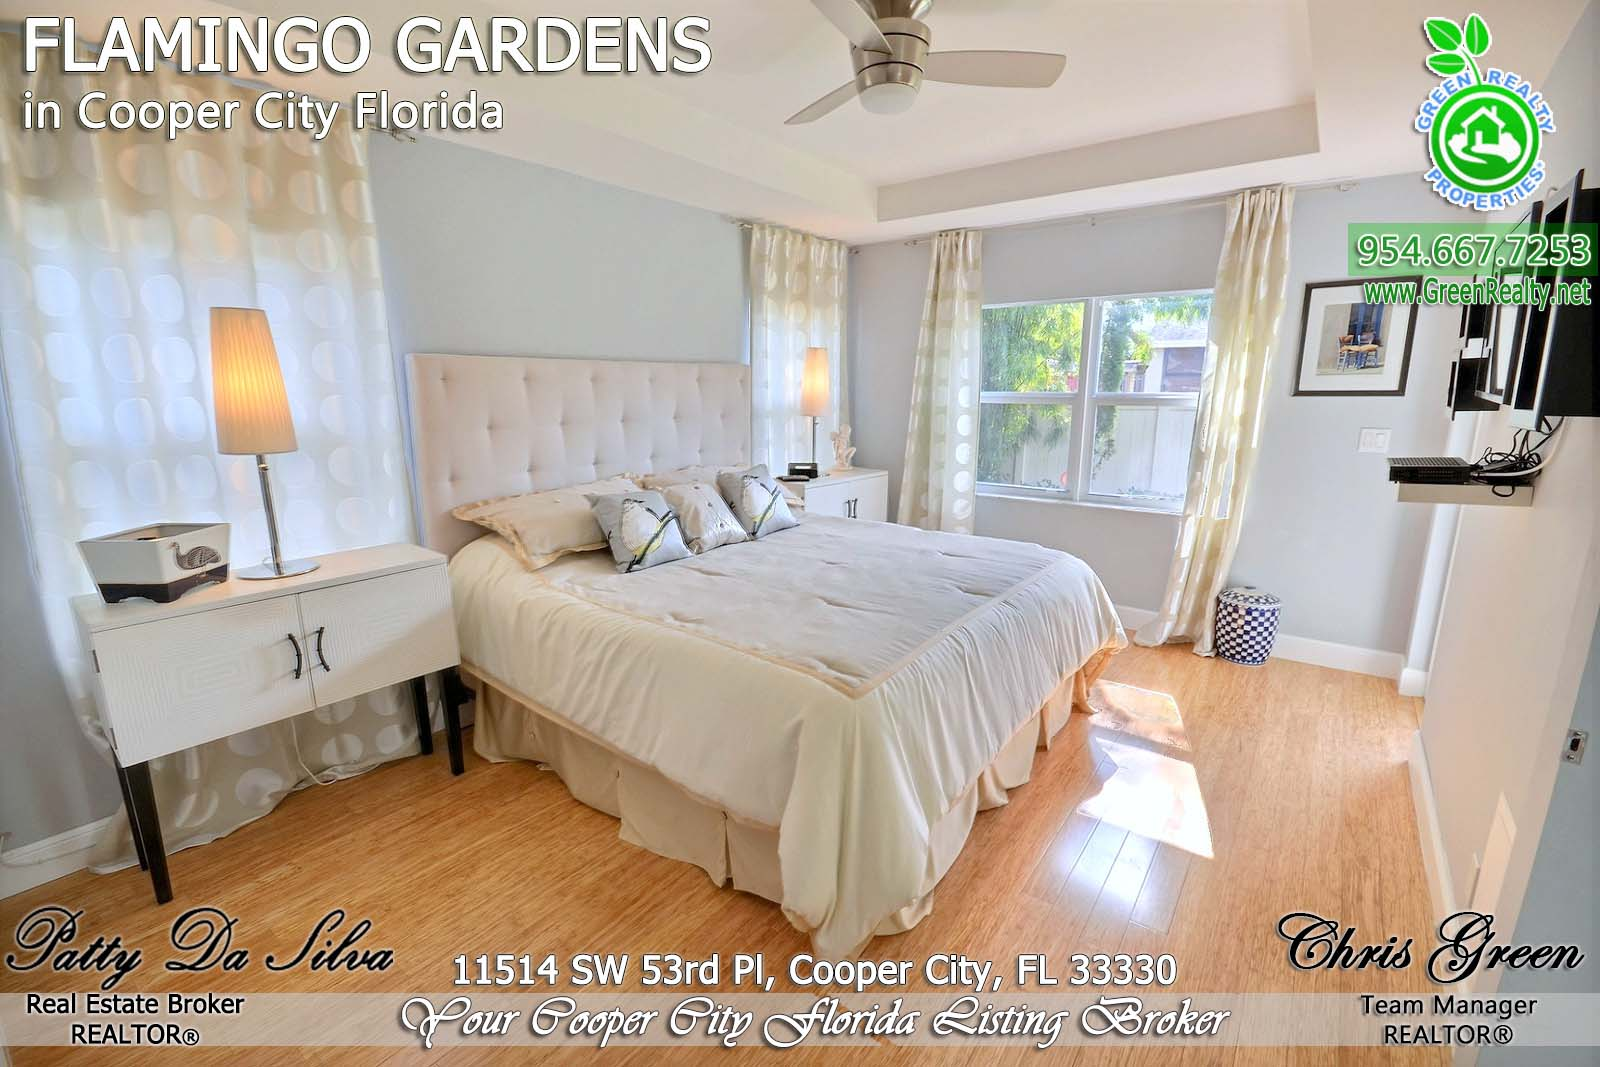 31 Flamingo Gardens Cooper City Homes For Sale (28)